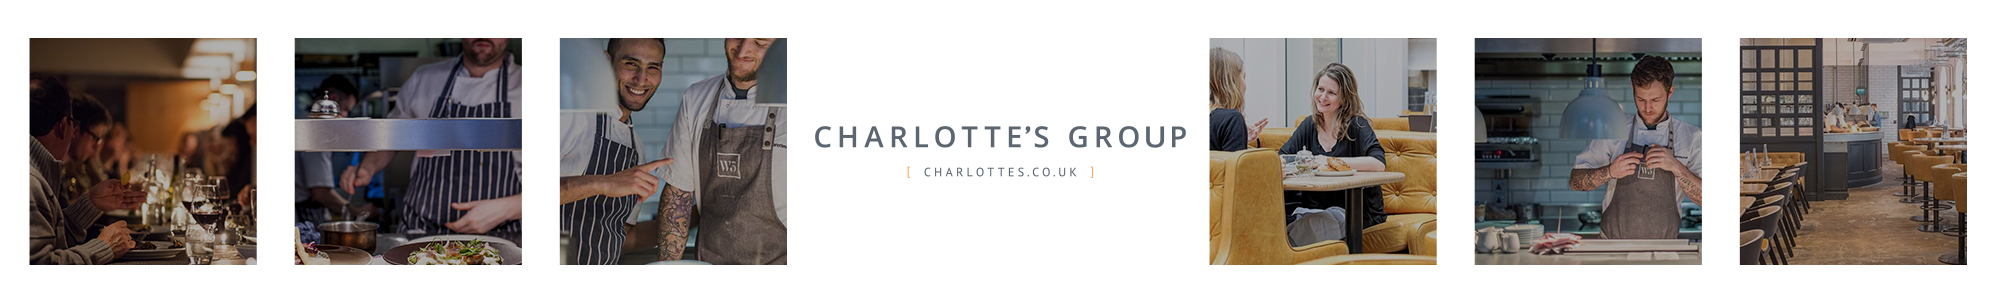 Charlottes Group